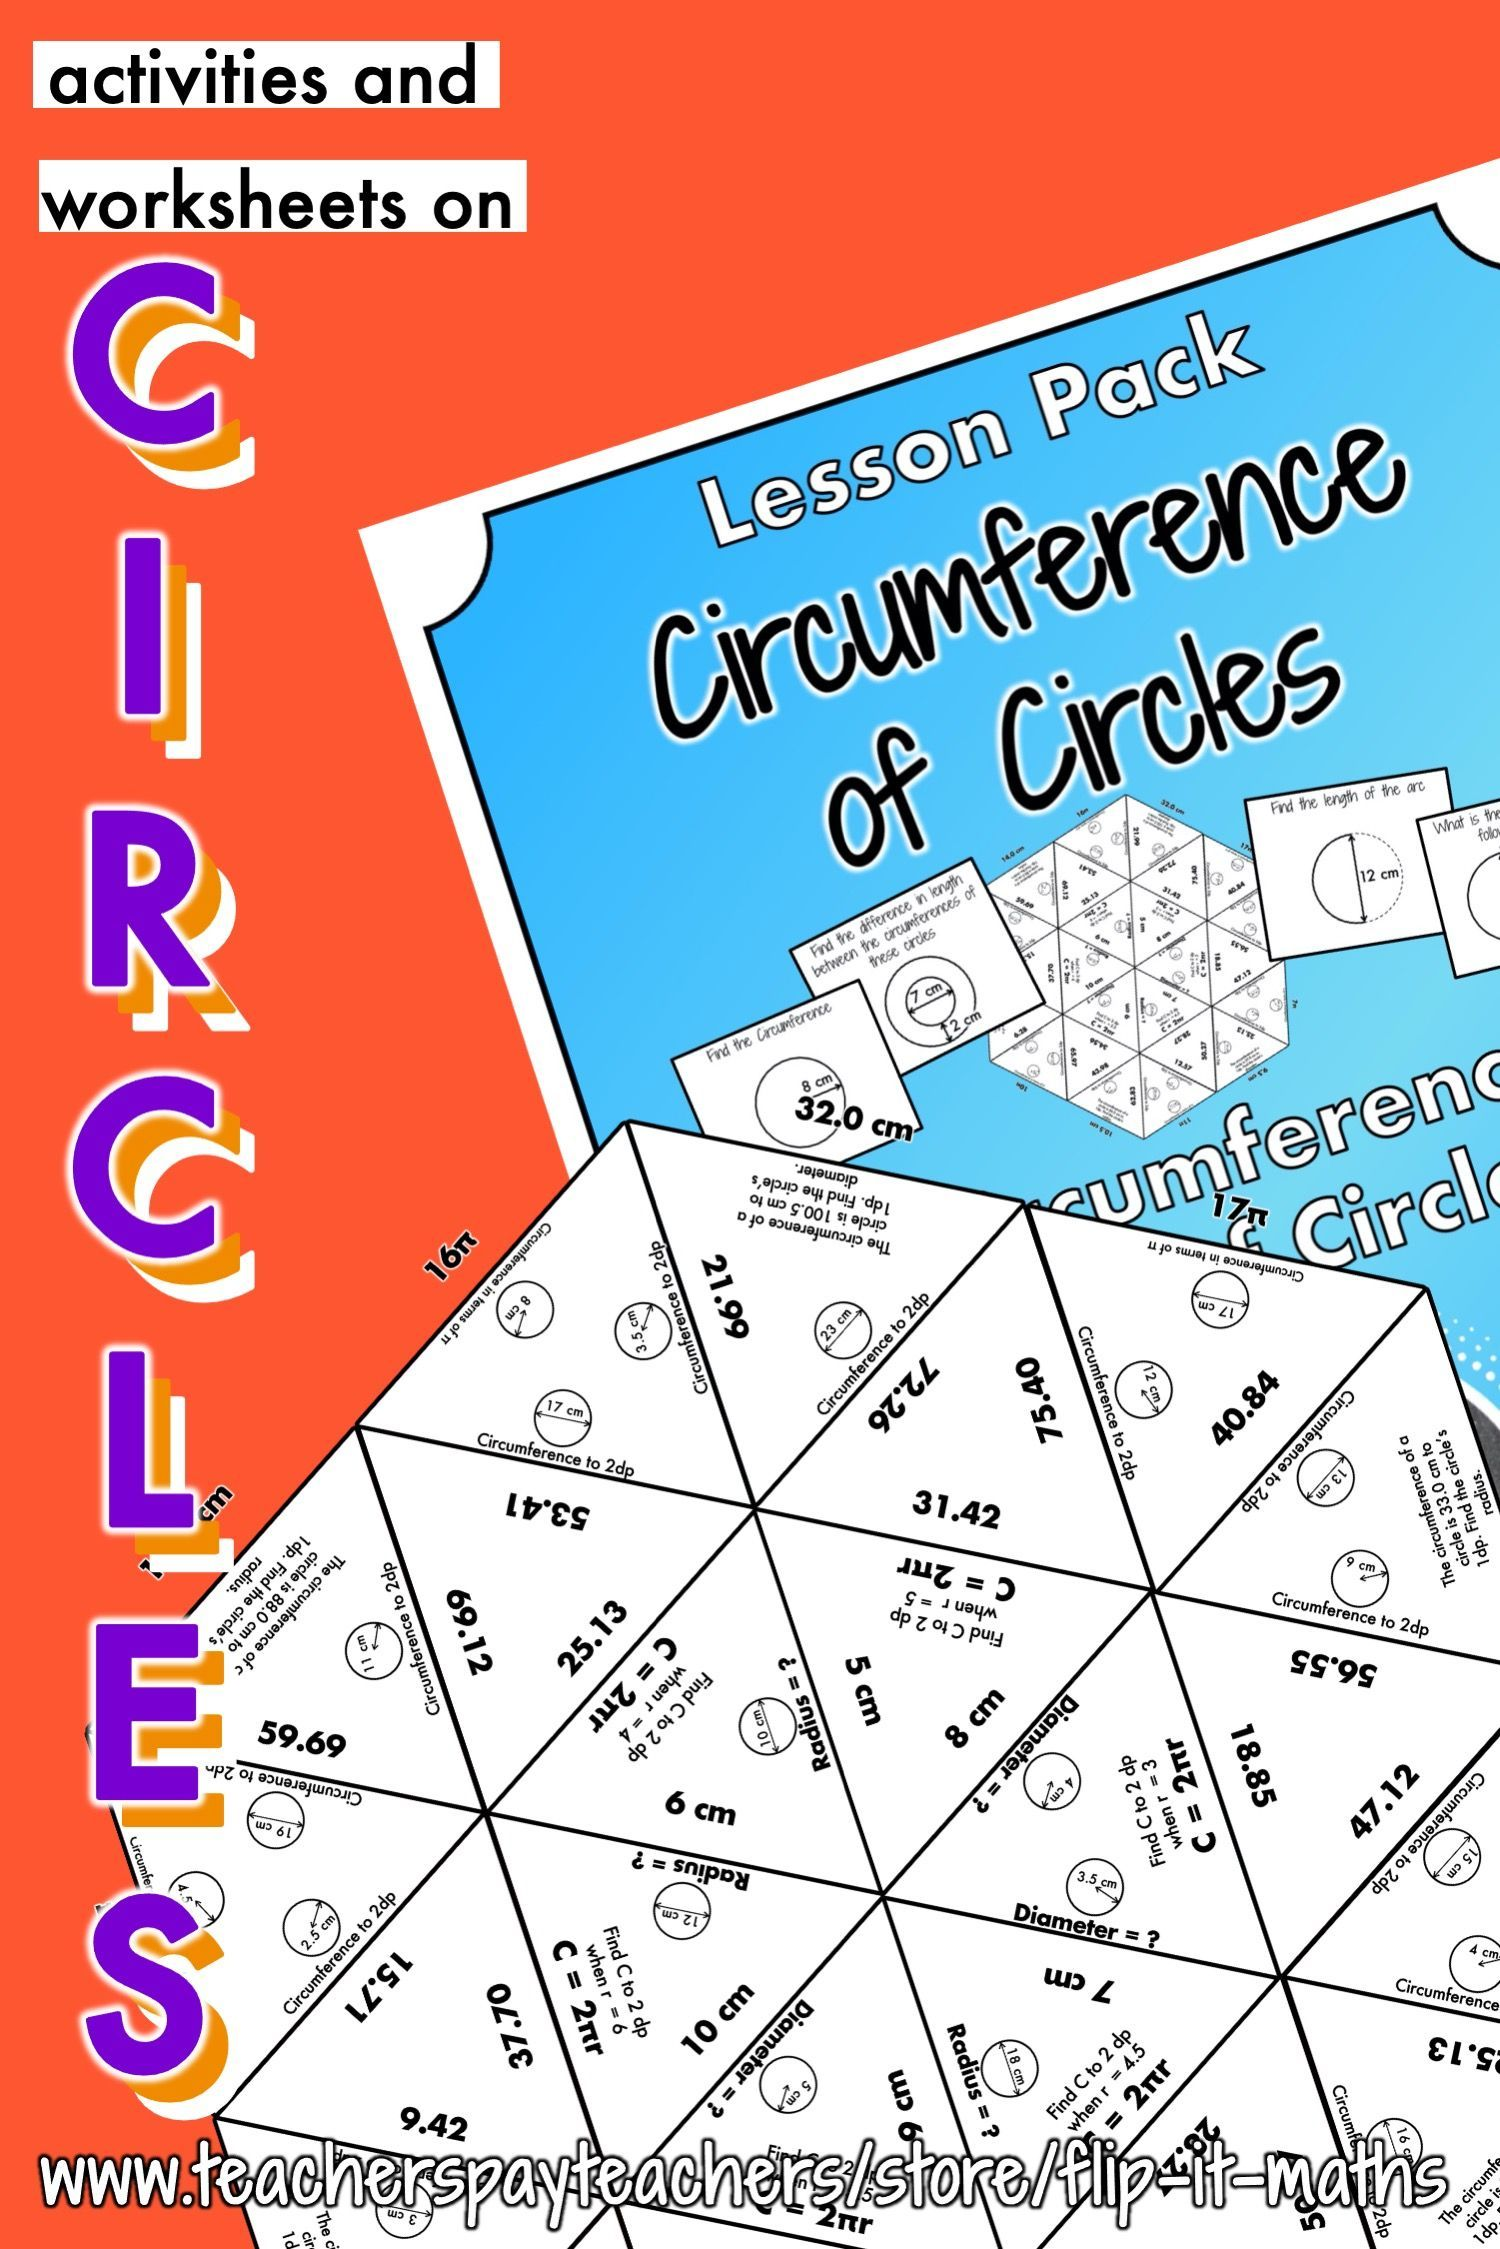 Circumference Of Circles In